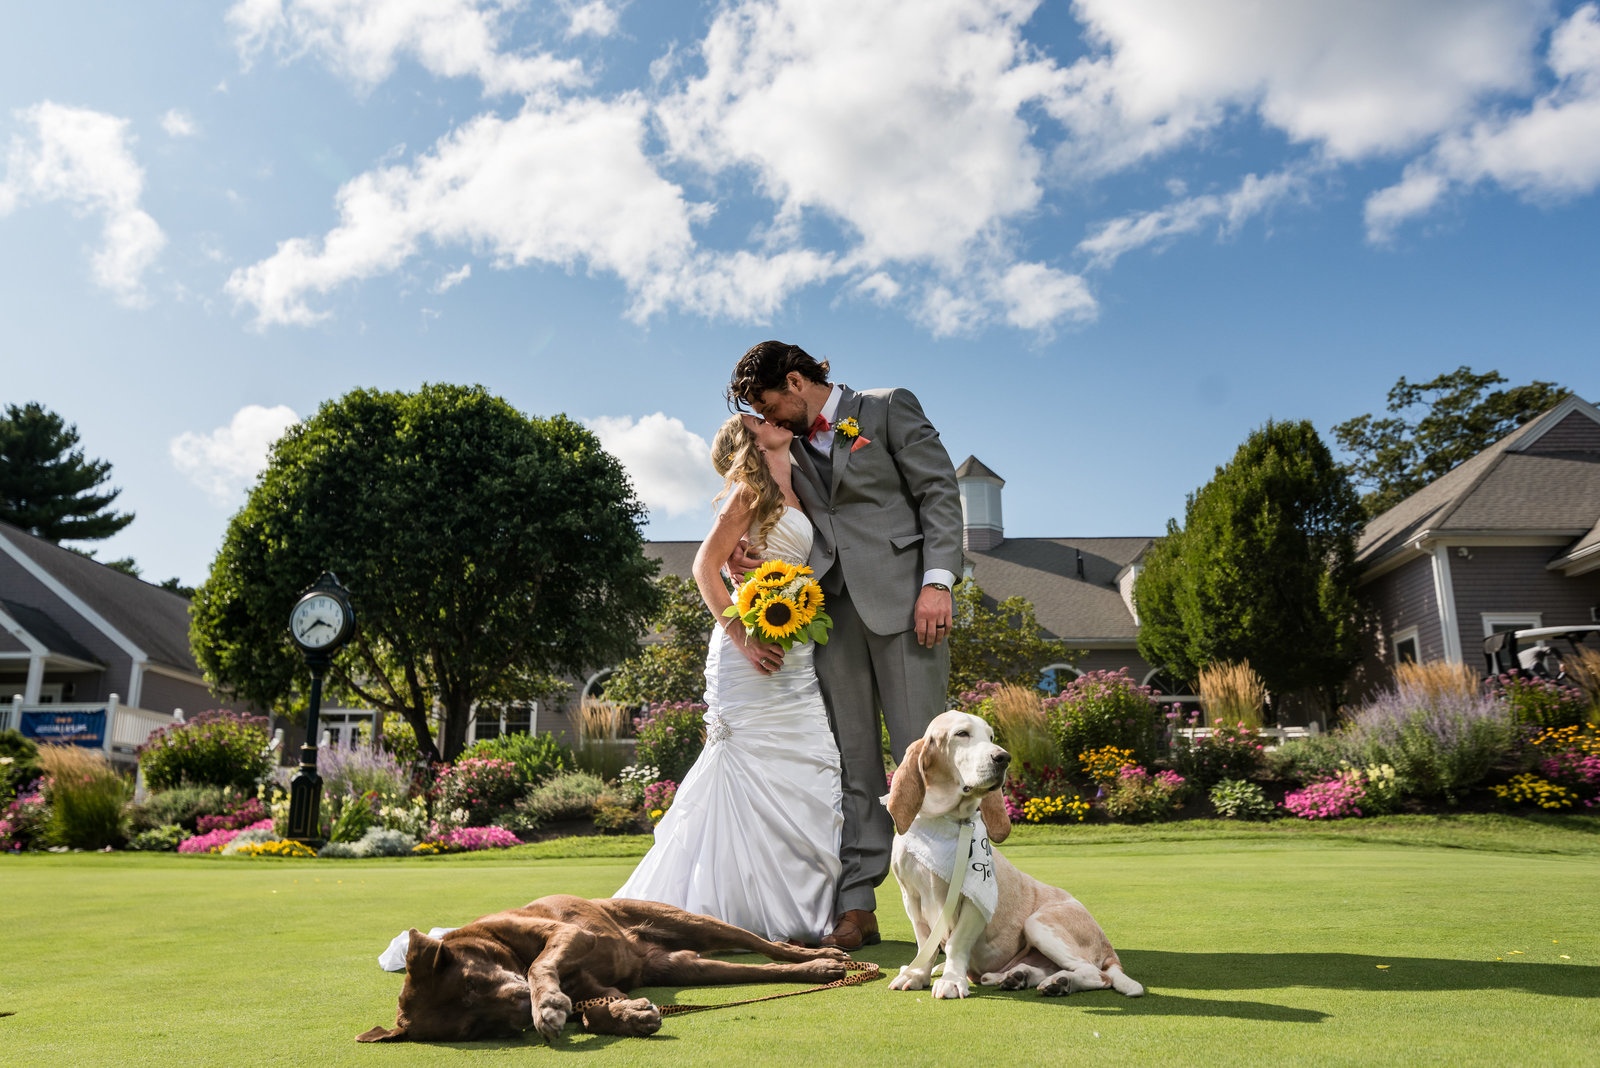 wedding couple on a golf course with dogs